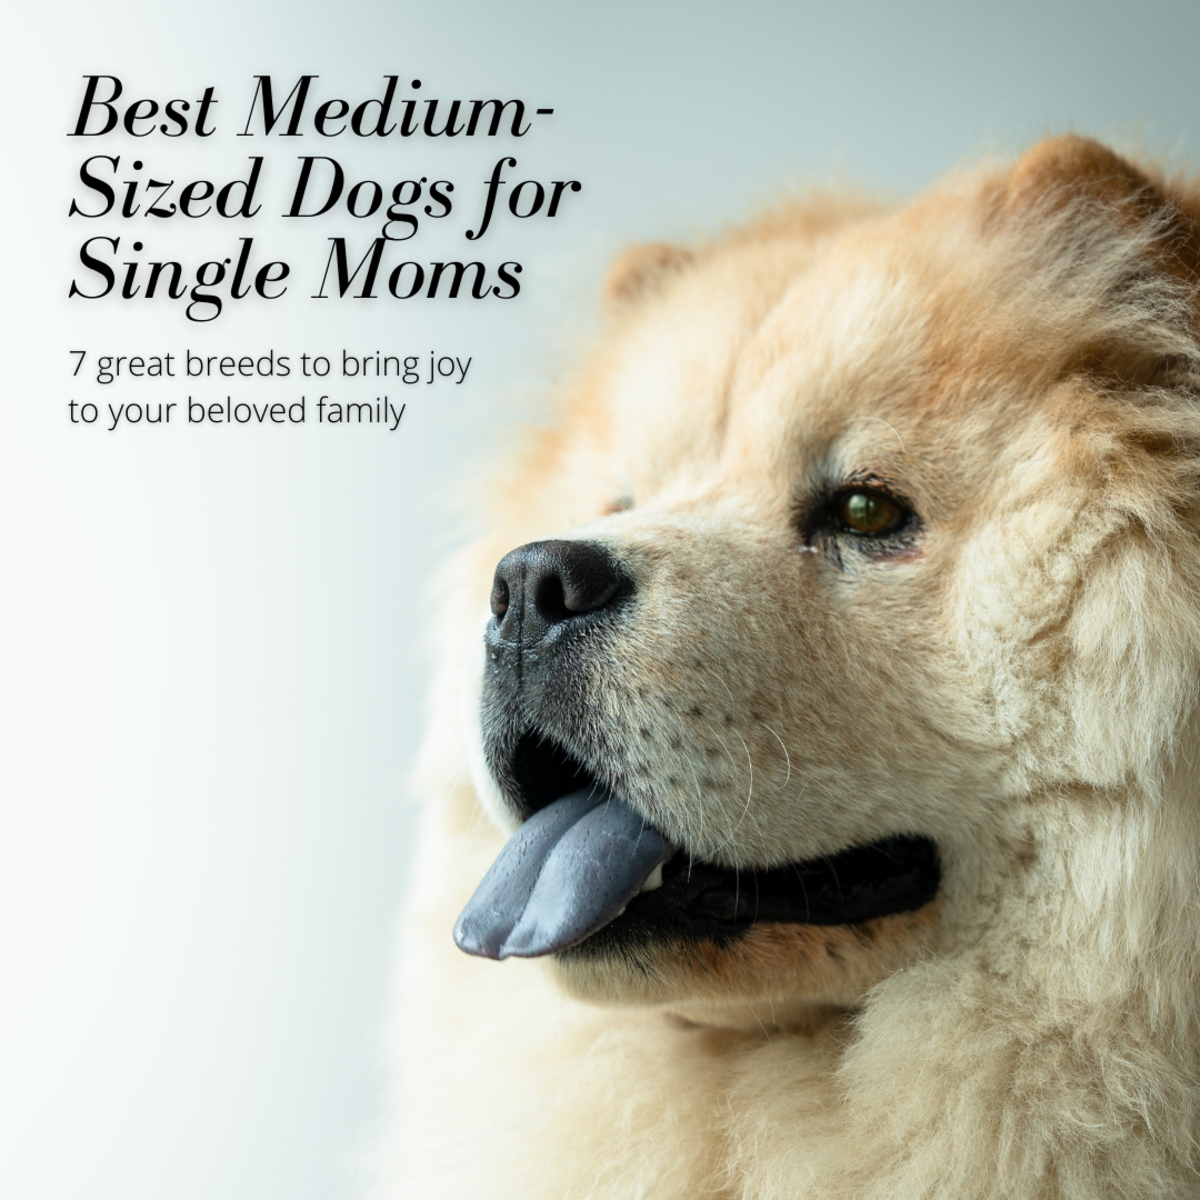 Best 7 Medium-Sized Guard Dogs for Single Moms